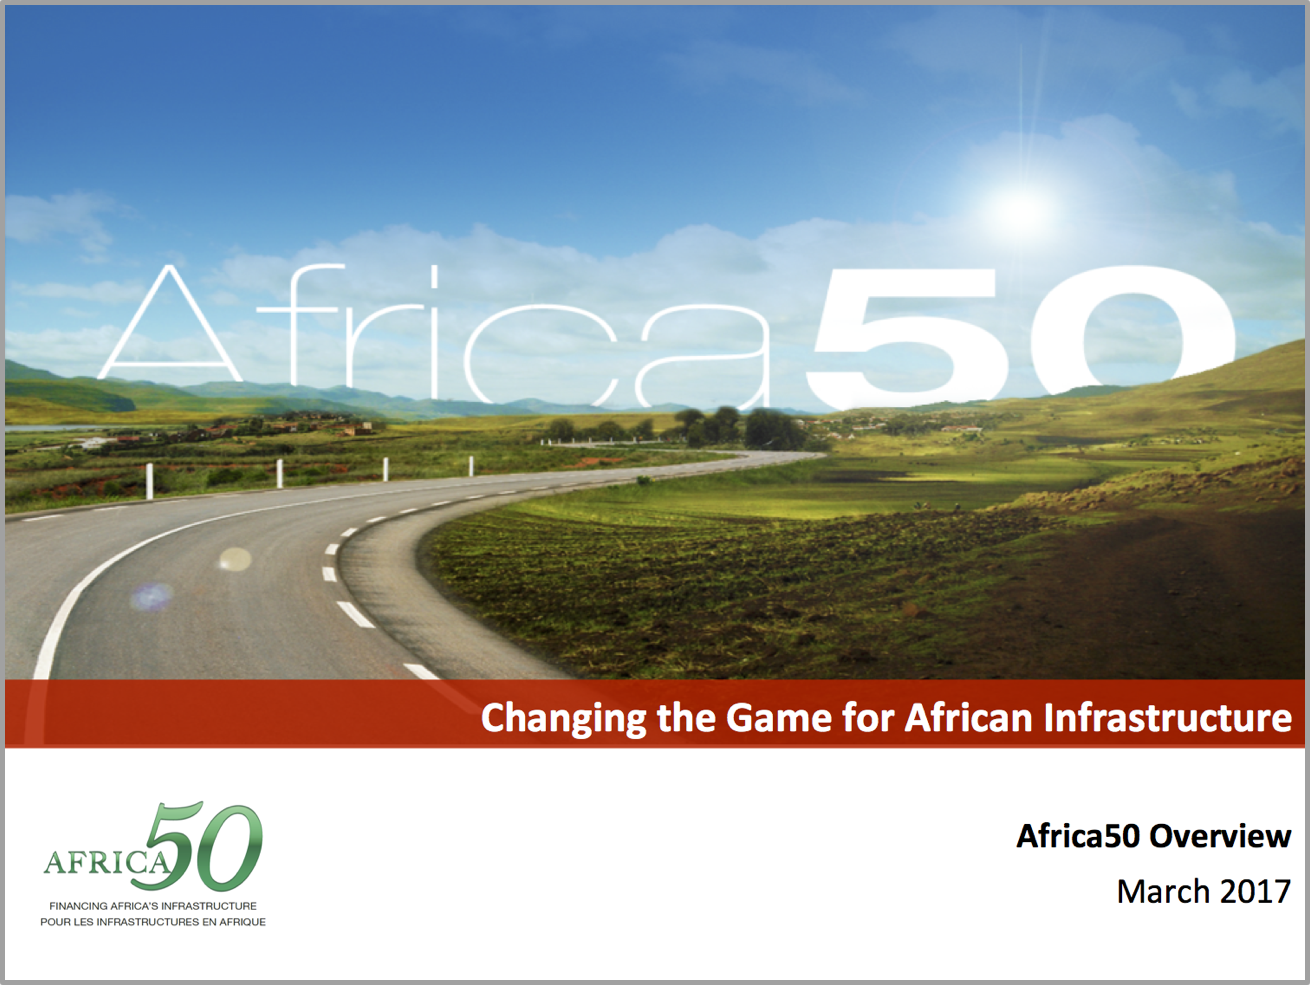 Africa50 Overview